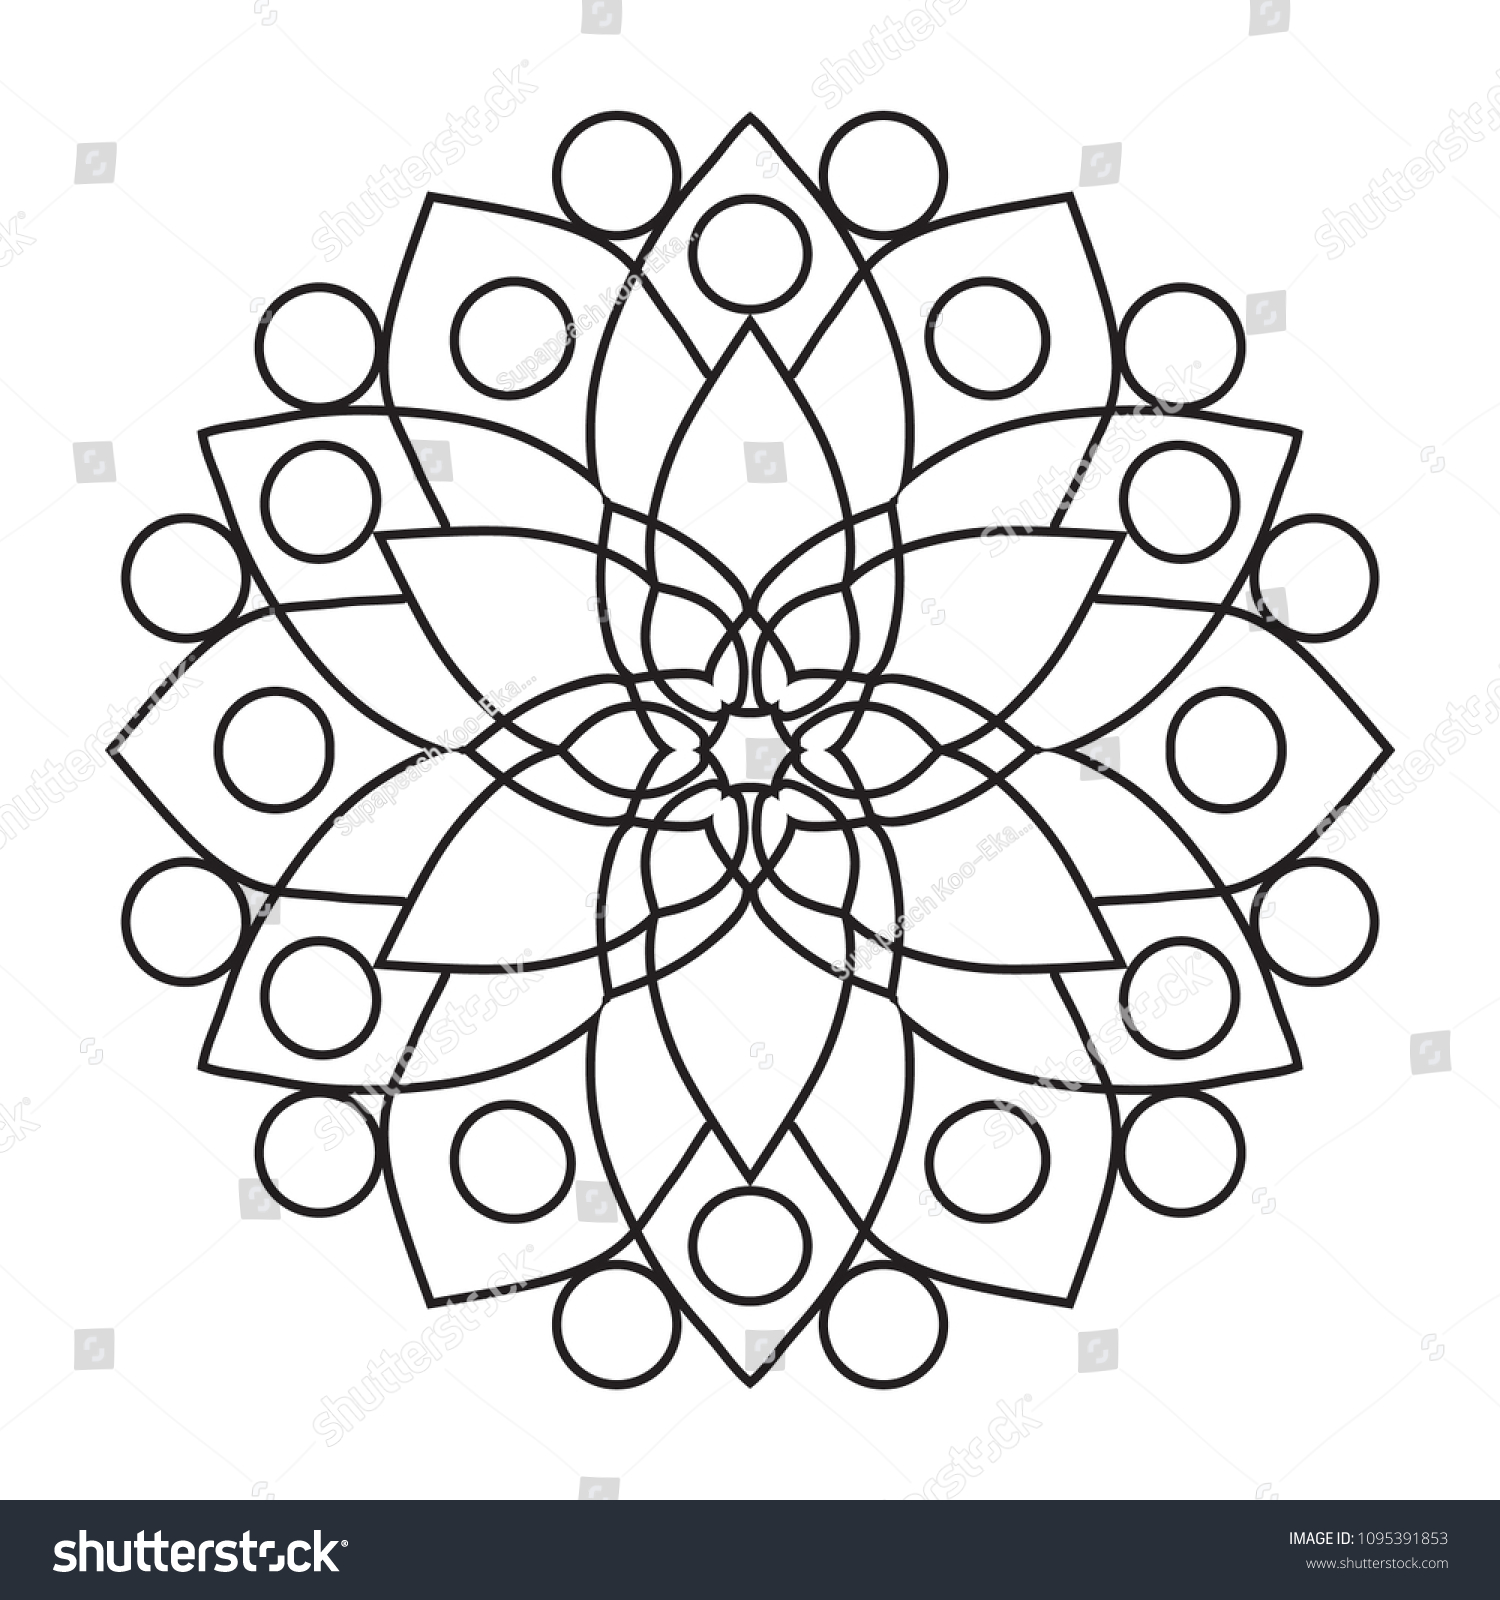 Easy Basic Mandala Coloring Book Pages Stock Illustration 1095391853